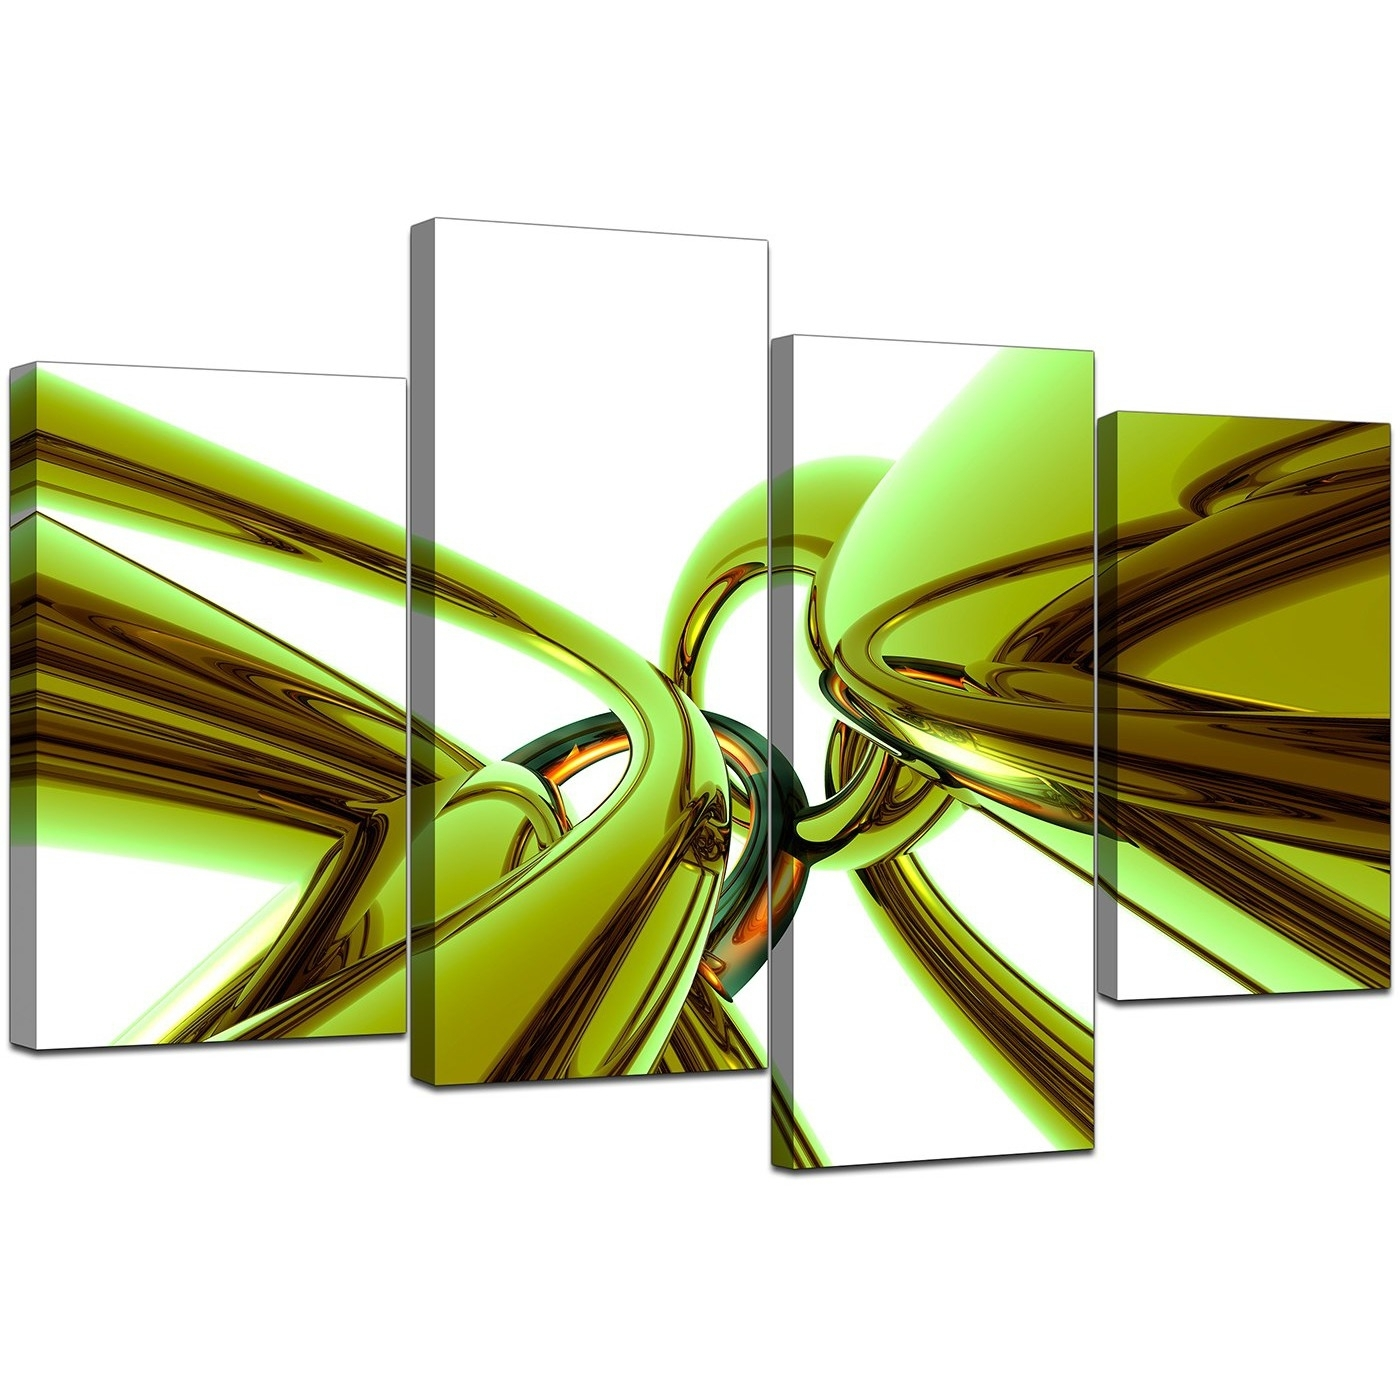 Abstract Canvas Wall Art In Green For Your Living Room – Set Of 4 Regarding Green Wall Art (View 2 of 20)